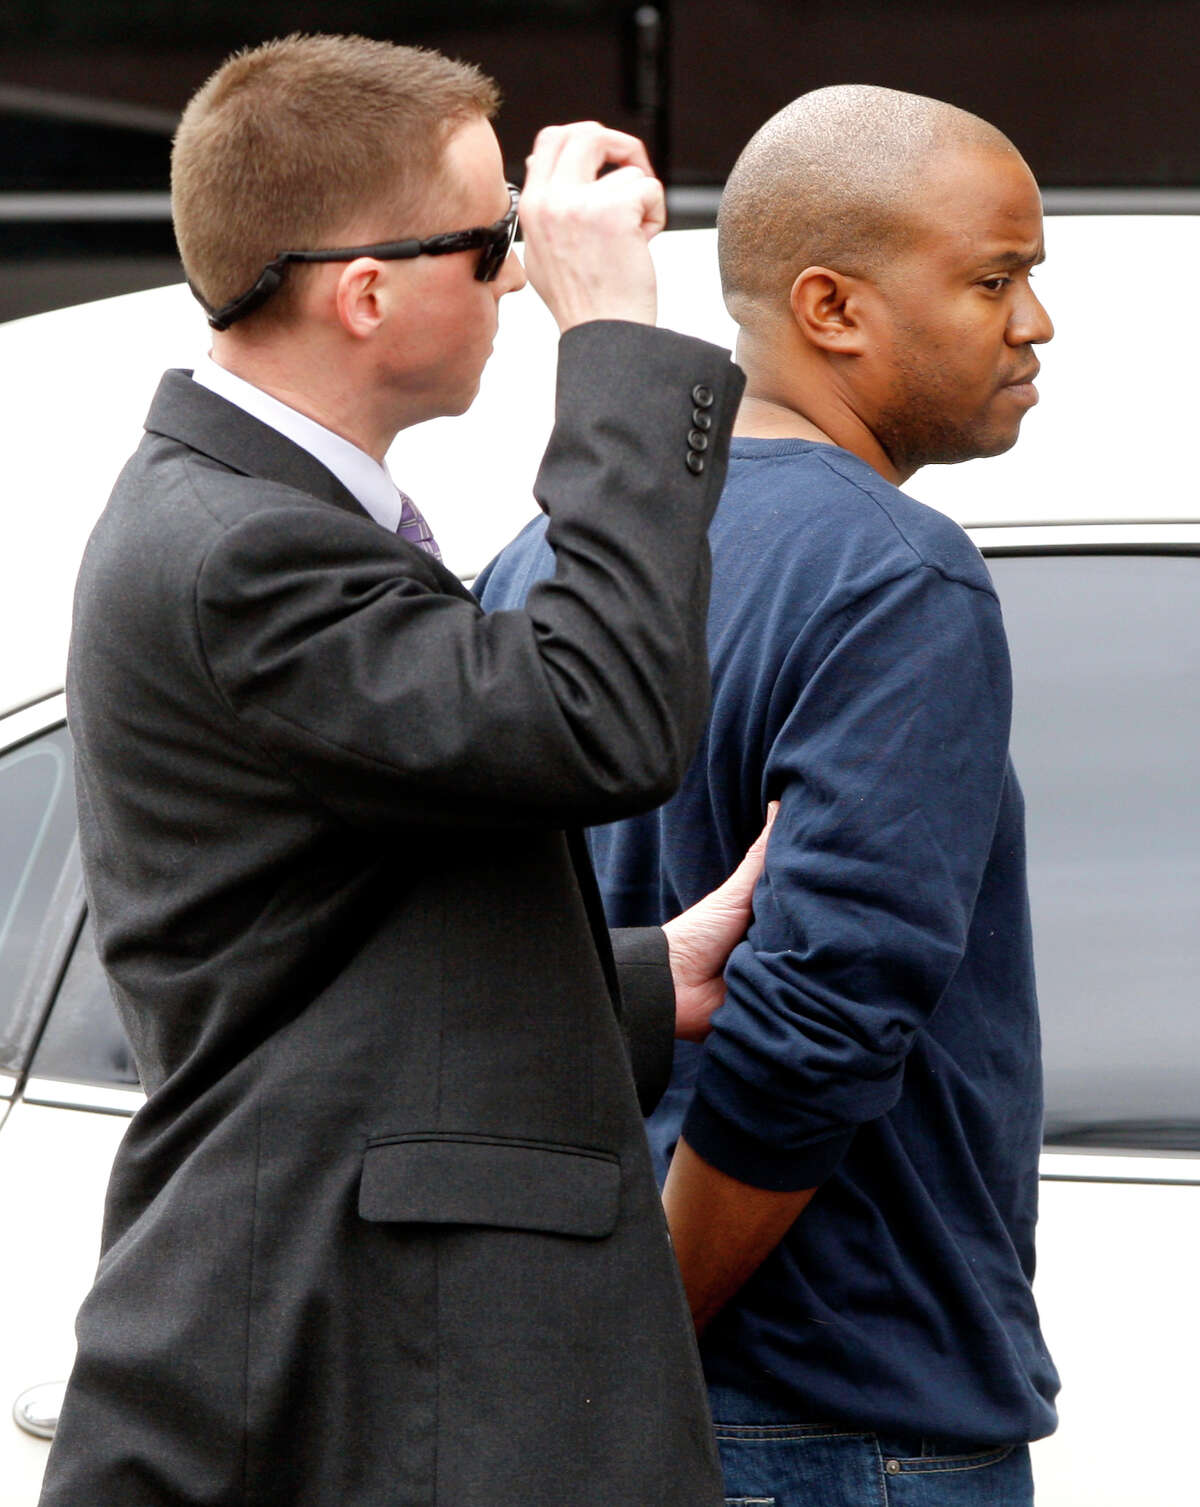 FBI agents take Gemase Simmons to federal court in San Antonio on Tuesday, Jan. 31, 2012, after he was arrested on federal child-porn related charges. Simmons was featured in a news segment on Dateline alleging he scammed several youths into believing they were being filmed for a reality show about modeling.